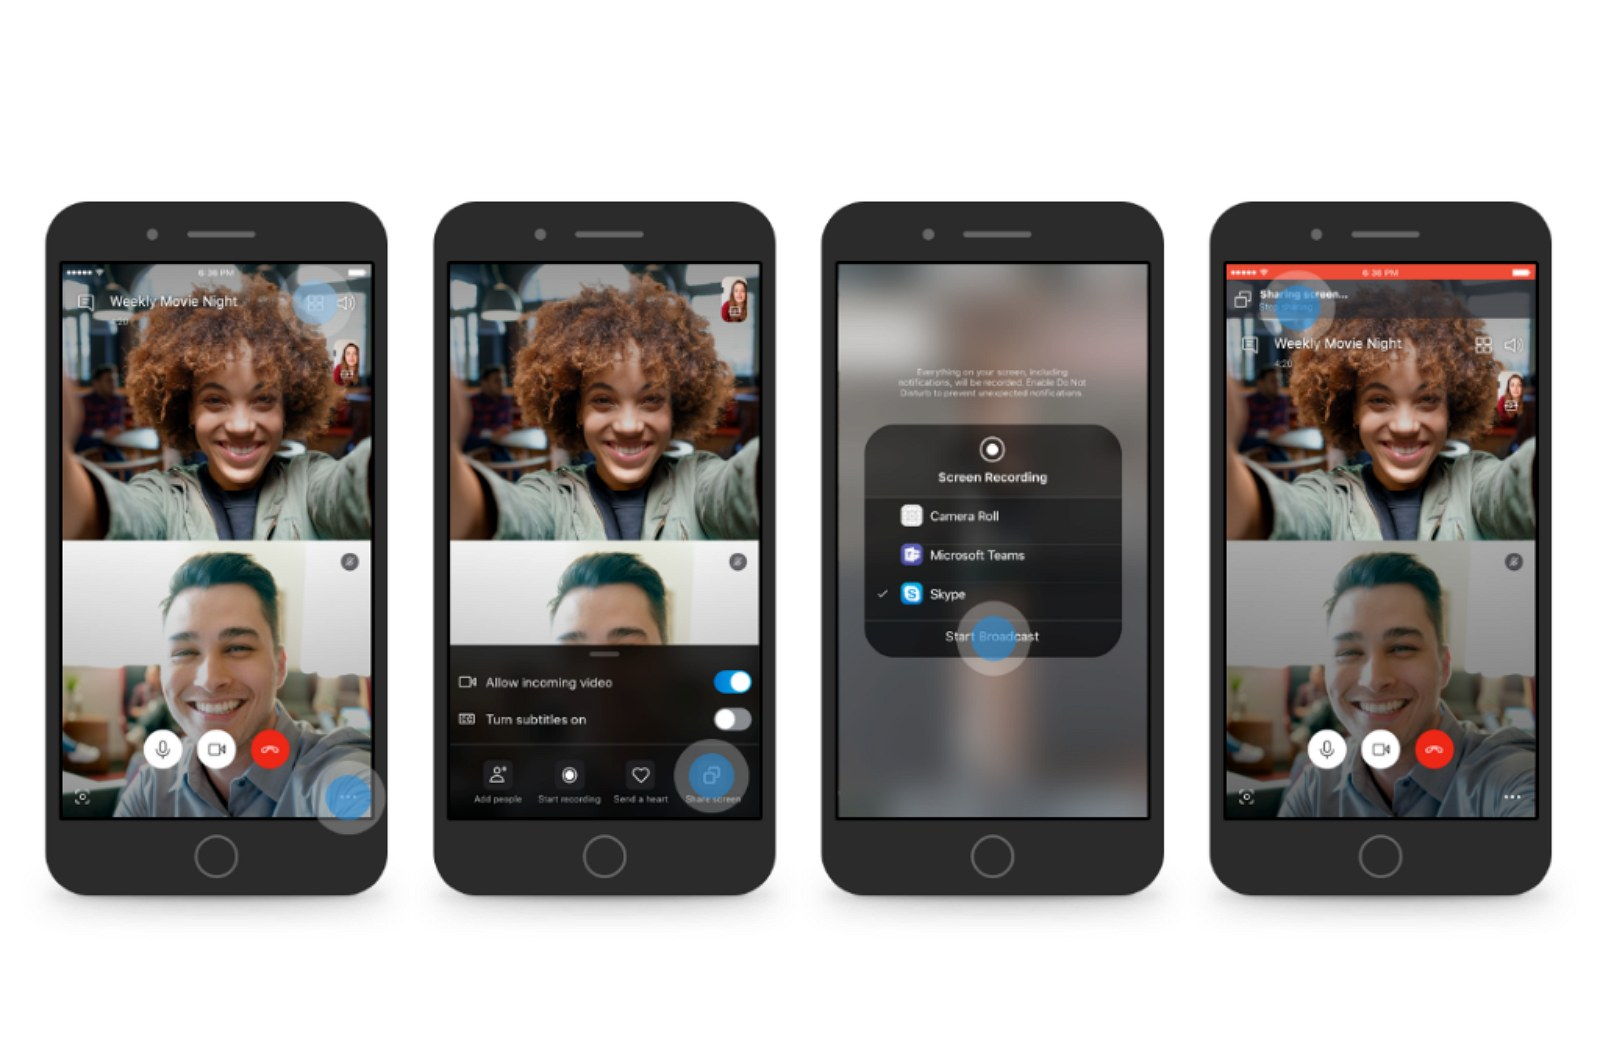 Skype screen sharing on Android and iOS